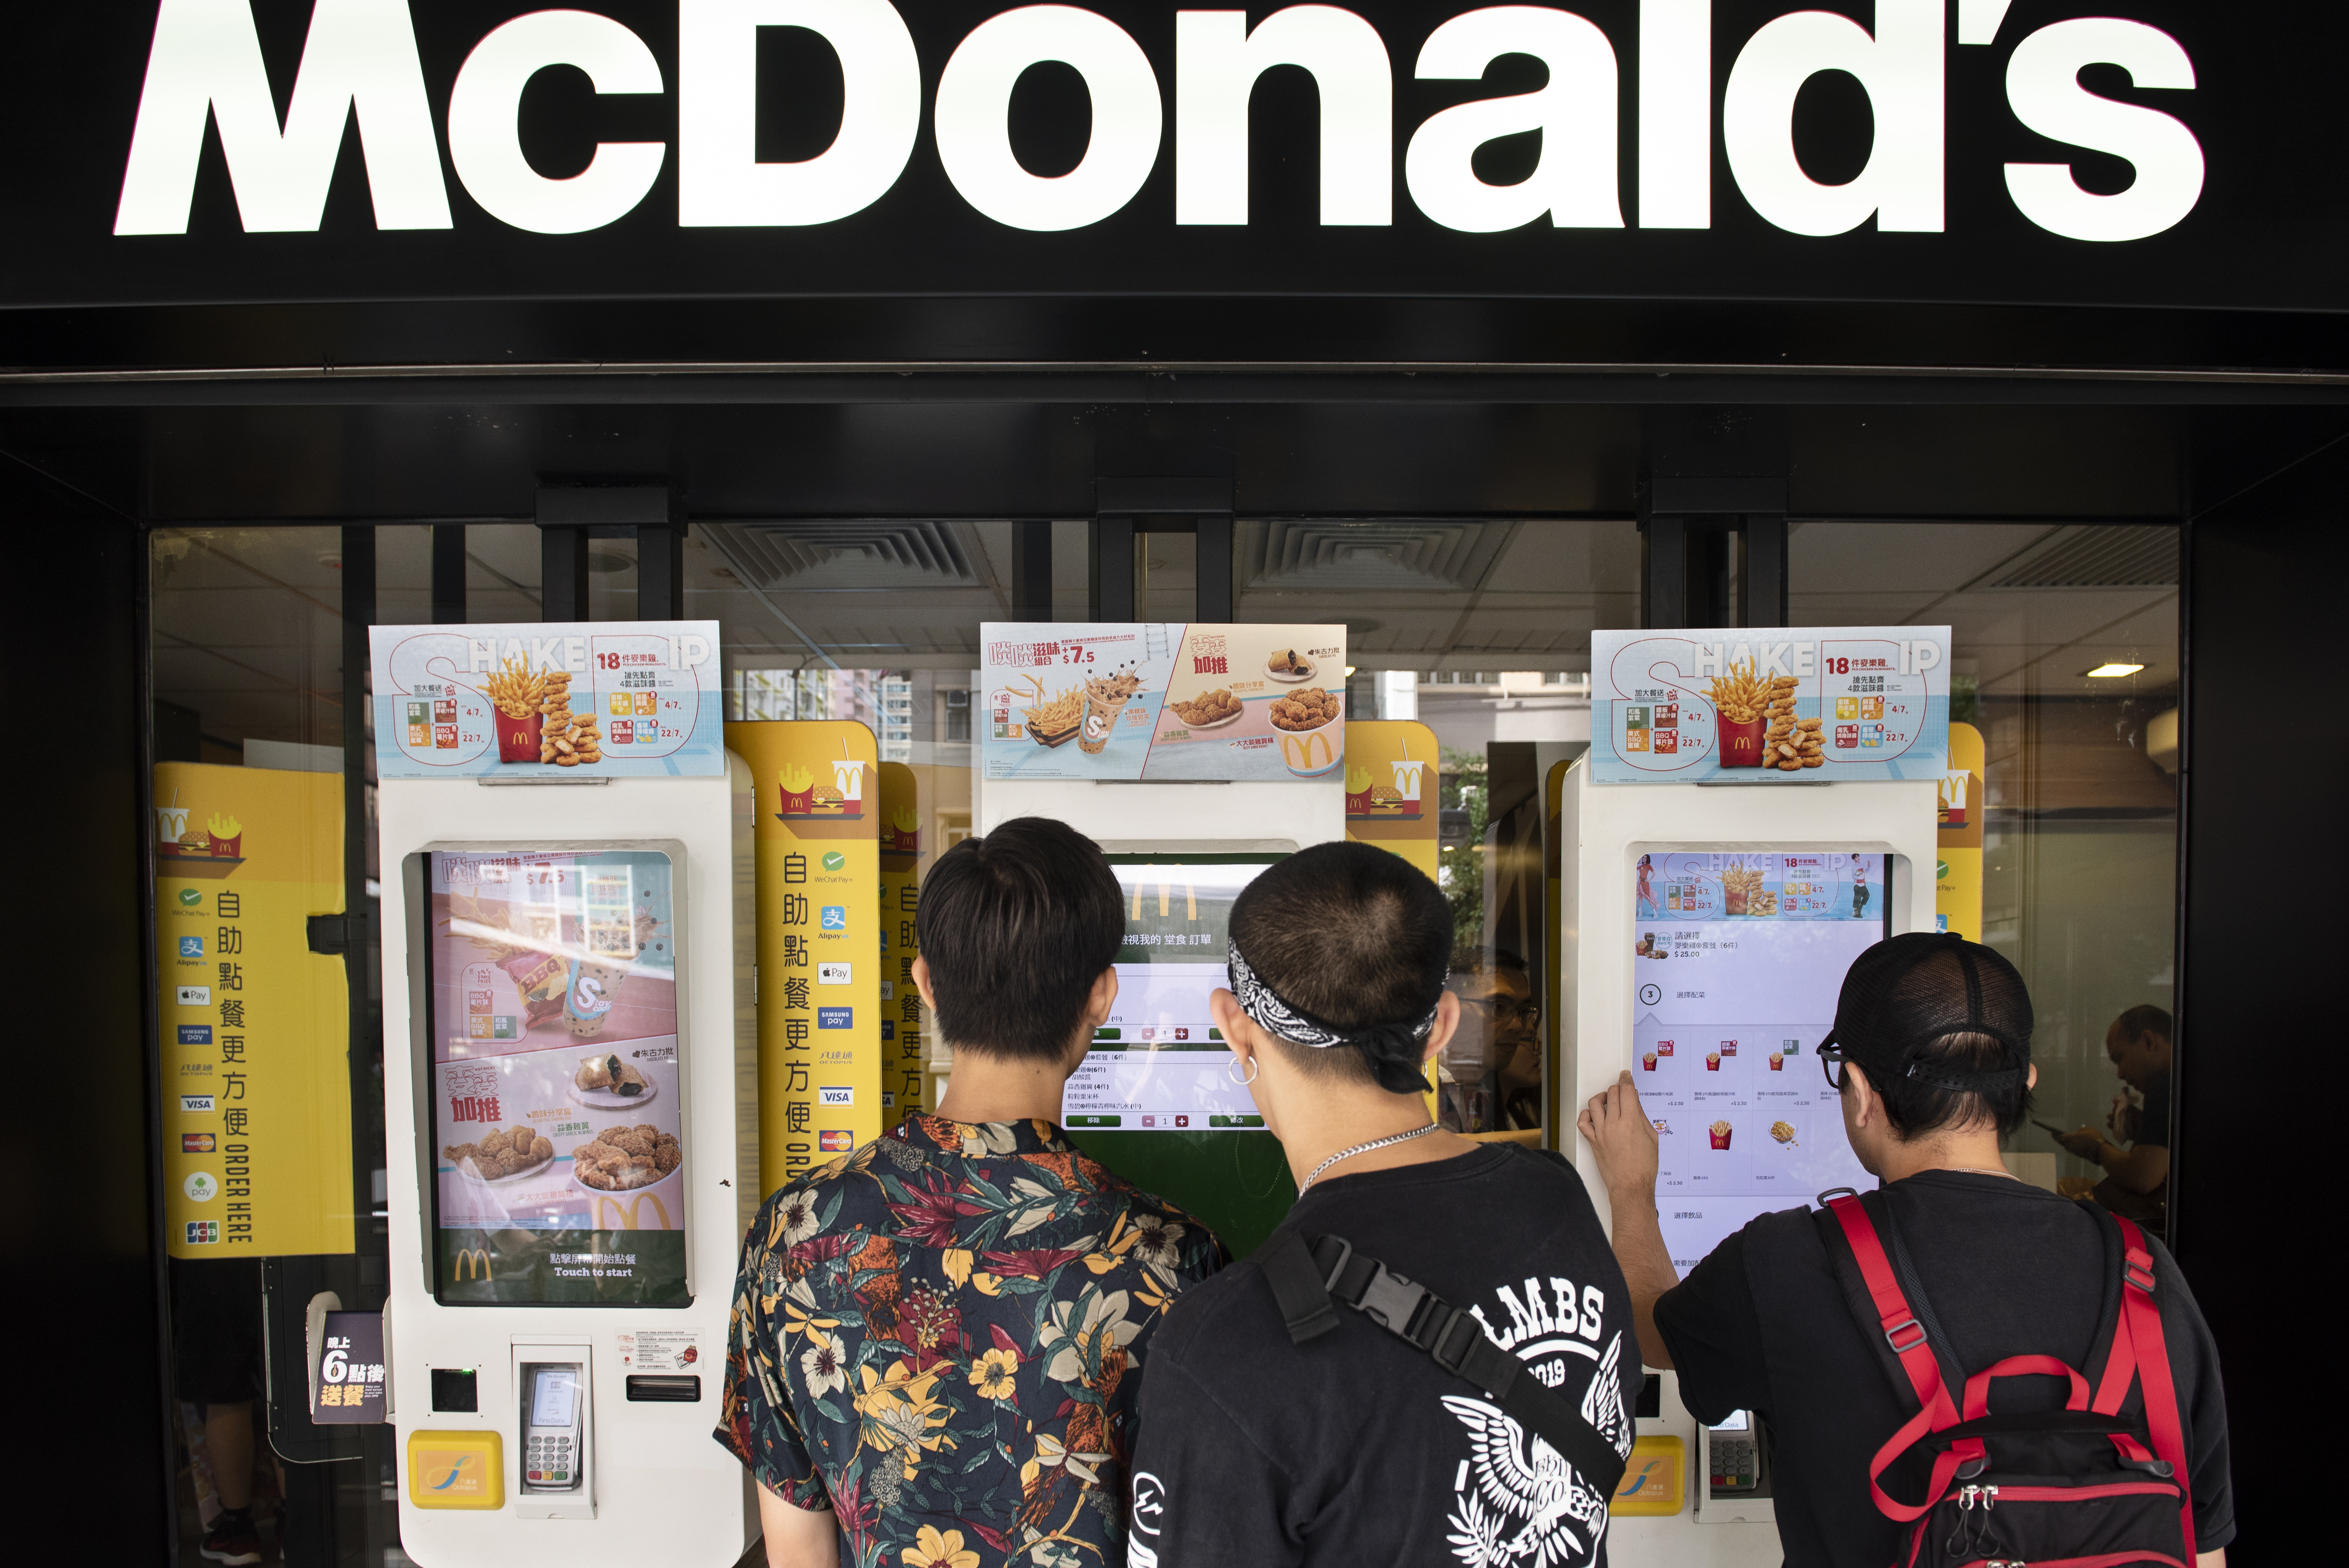 Customers order food in an automated self-ordering kiosk at...